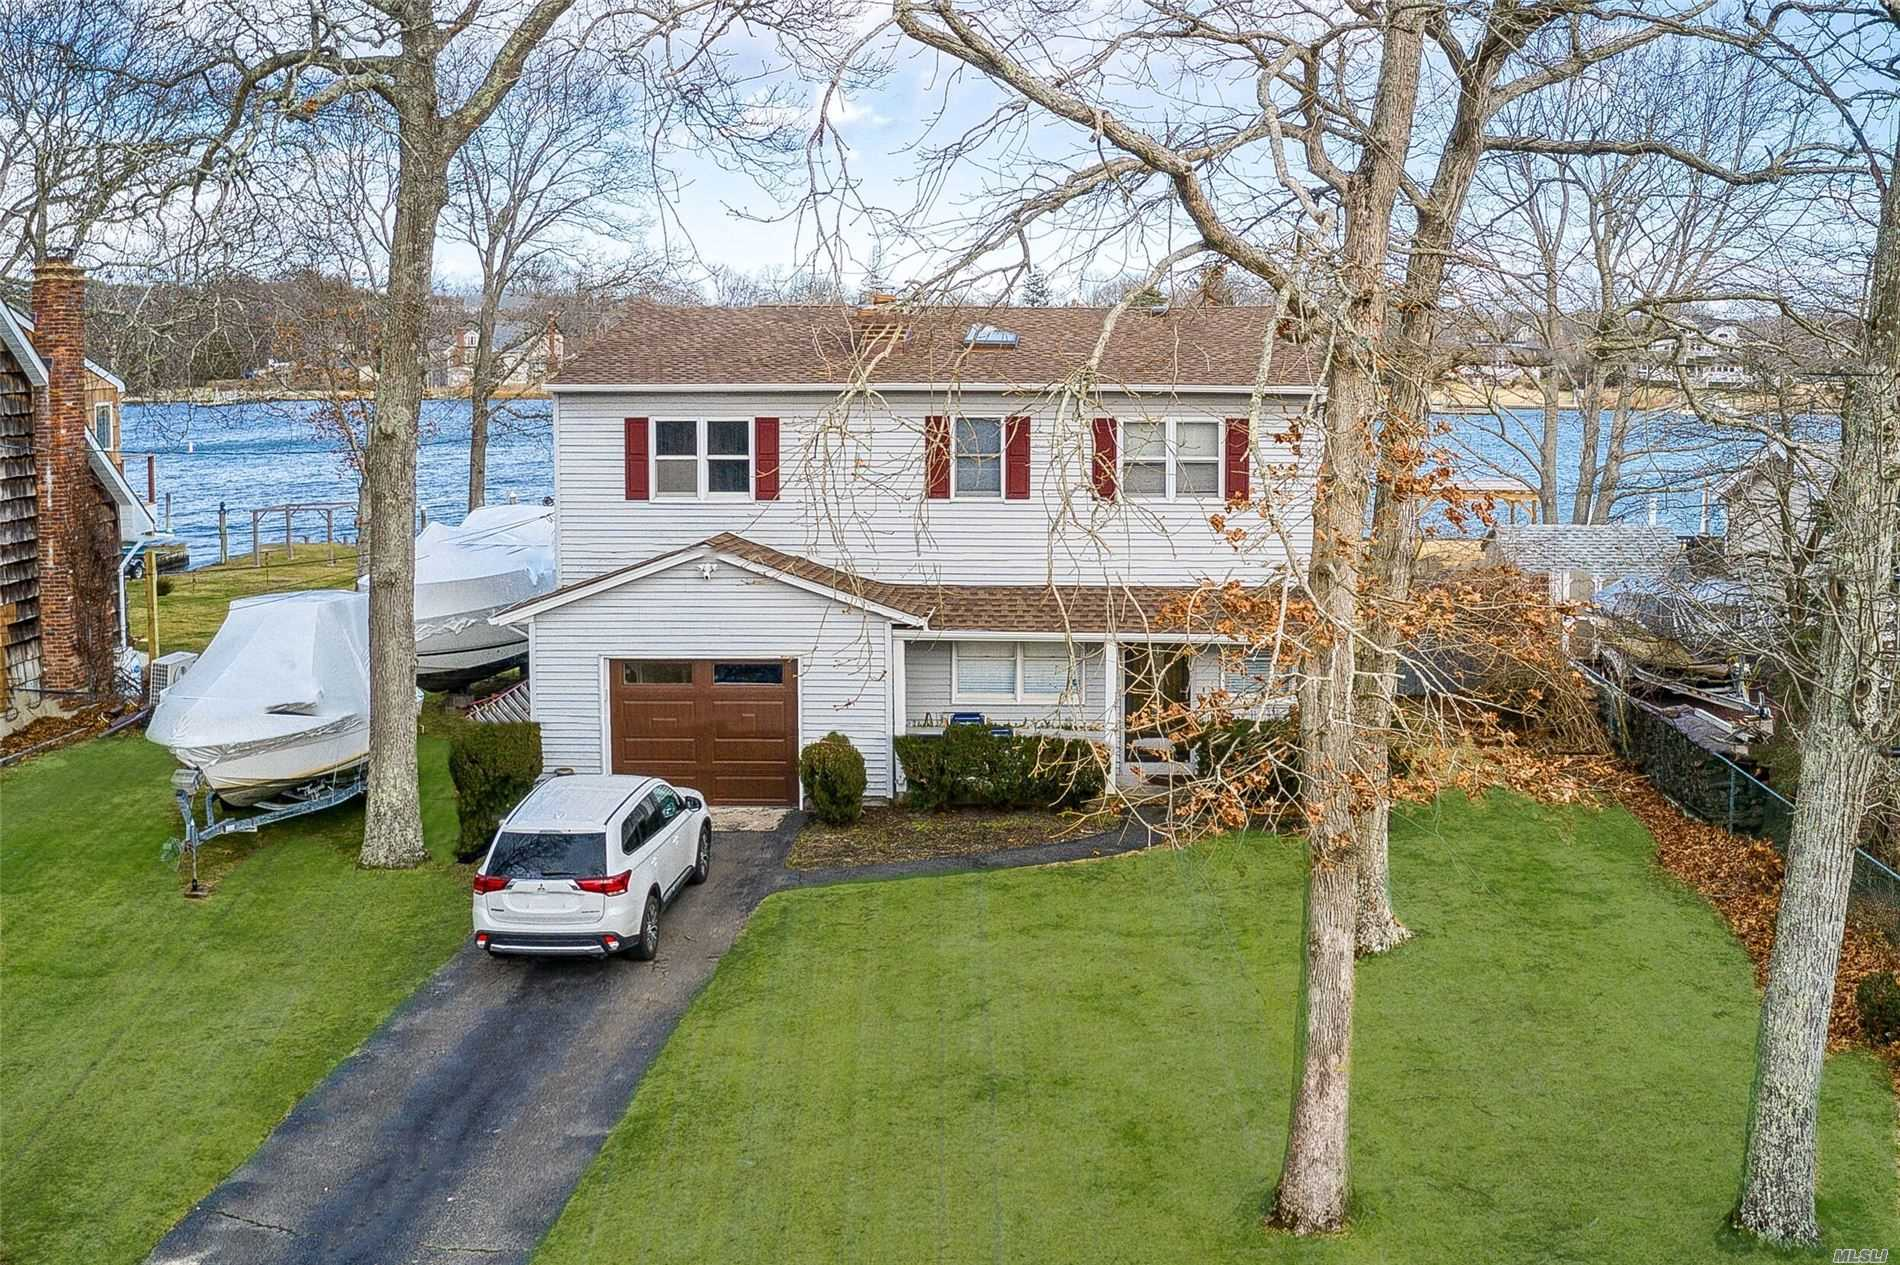 This Amazing Waterfront Home in Desirable Holiday Beach Commnity is Waiting for You! Features Include: Bright and airy Liv Rm w/fireplace, EIK, FDR, Den, Large Master Bedroom, 3 Additional Bedrooms, 1.5 Car Garage, New Roof, flashing and garage door, Updated Heating System 75 Feet of Bulkhead with electric and water at dock. Deeded Beach and Boating, Clubhouse. Great location. Call Today!